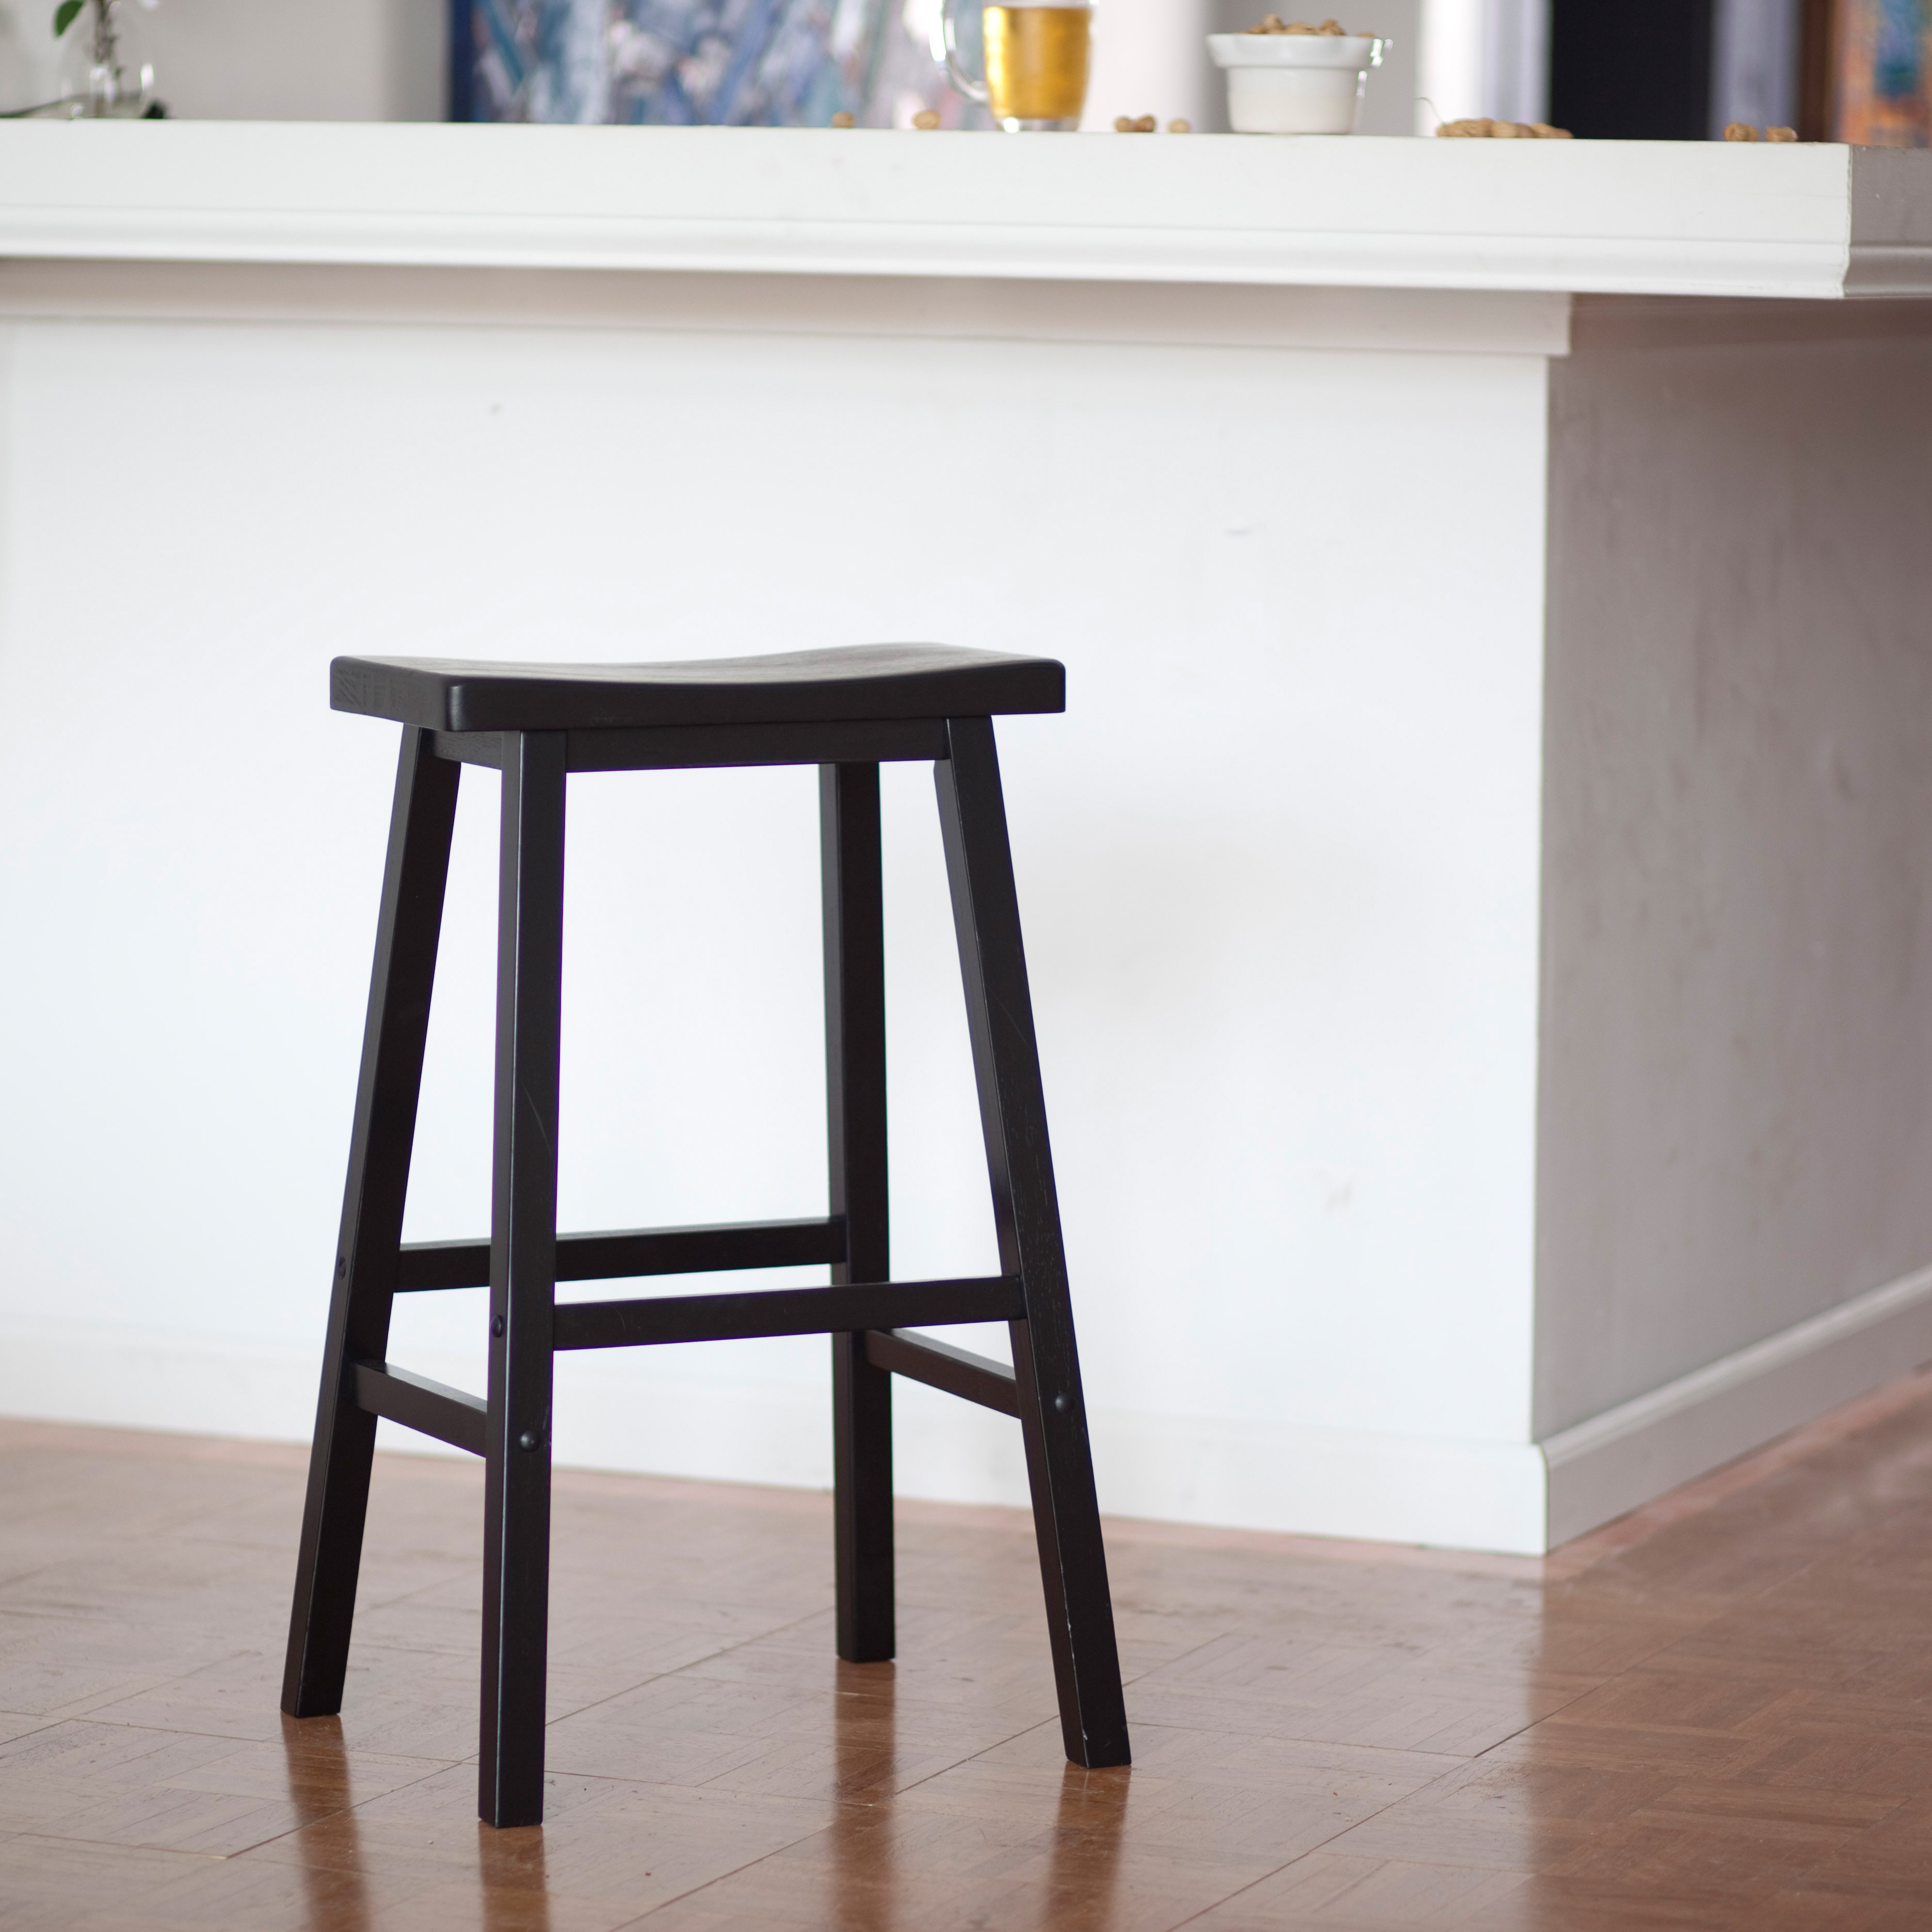 Details About 29 Saddle Seat Bar Stool Antique Solid Wood Kitchen Counter Furniture Black New